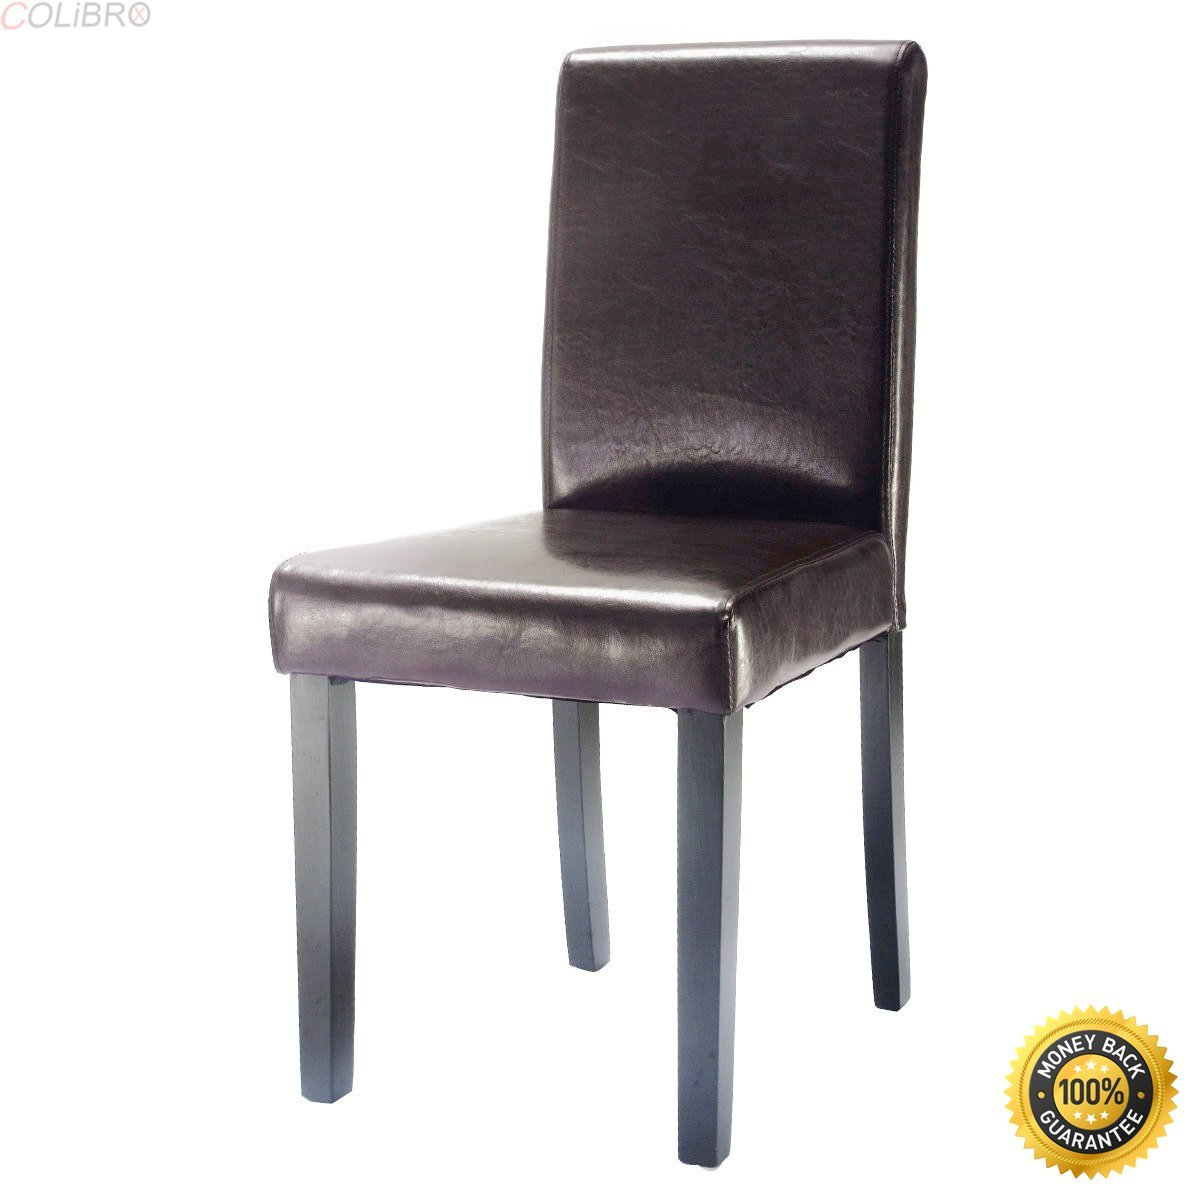 eb229dc8f1b1 COLIBROX--Set of 4 Elegant Design Leather Contemporary Dining Chairs Home  Room